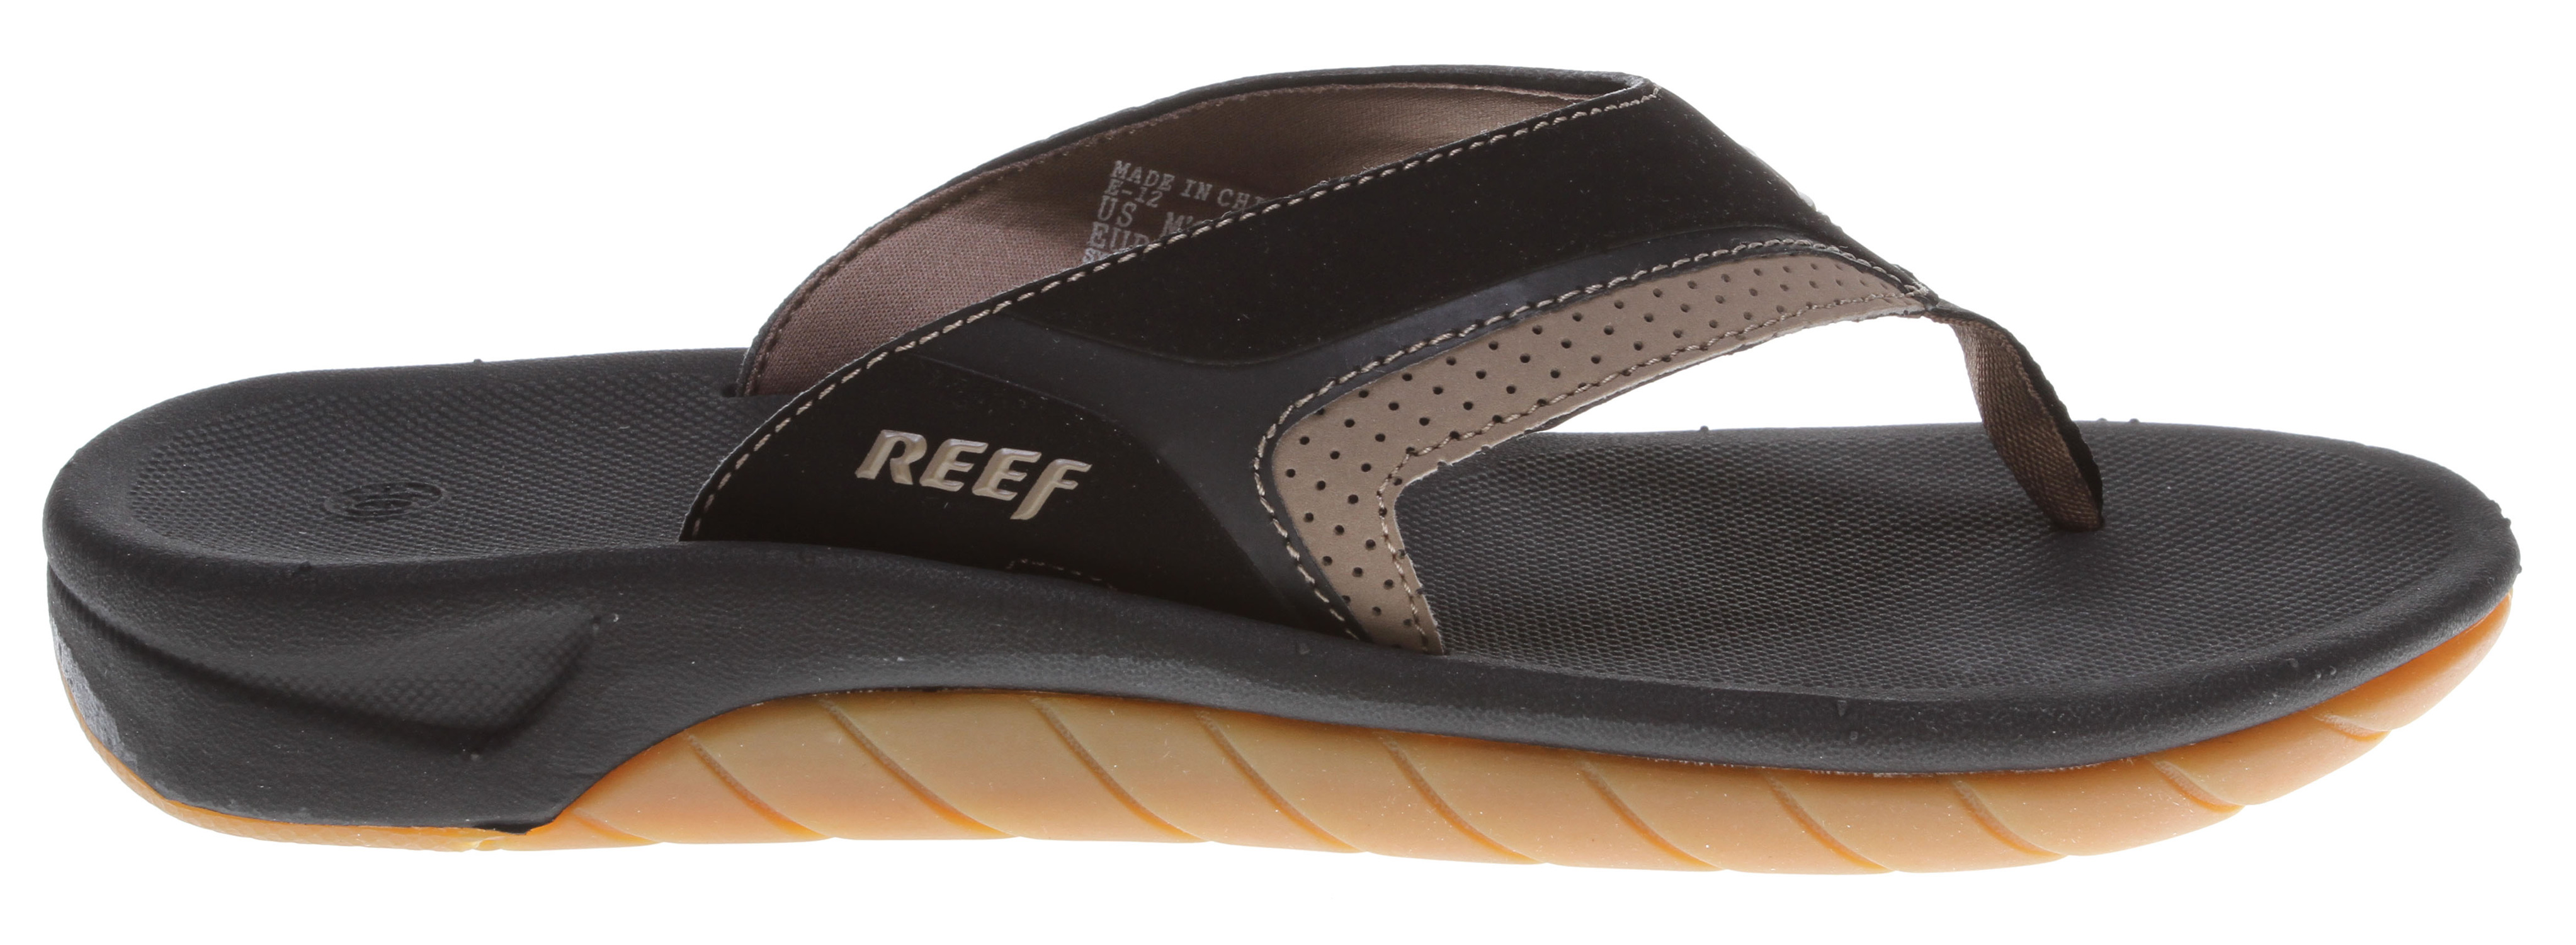 Surf Key Features of the Reef Slap II Sandals: Guy's Performance Sandal Updated classic on slip-on footwear Comfortable, leather upper with emboss details Soft padded pigskin lining Original slap contoured compression molded EVA footbed with anatomical arch support Durable non-marking rubber outsole - $30.95